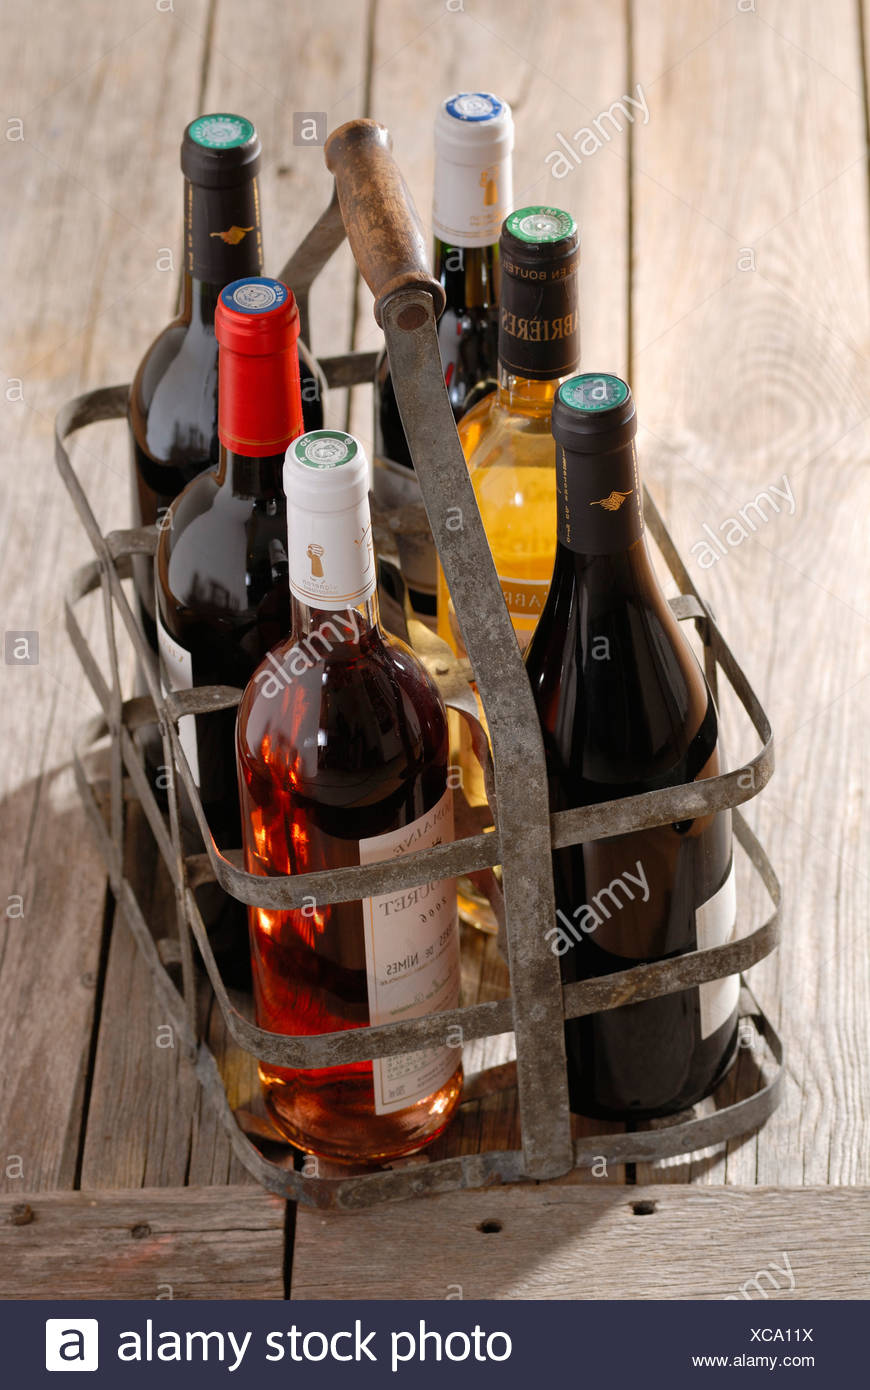 Bottles of wine in bottle carrier - Stock Image